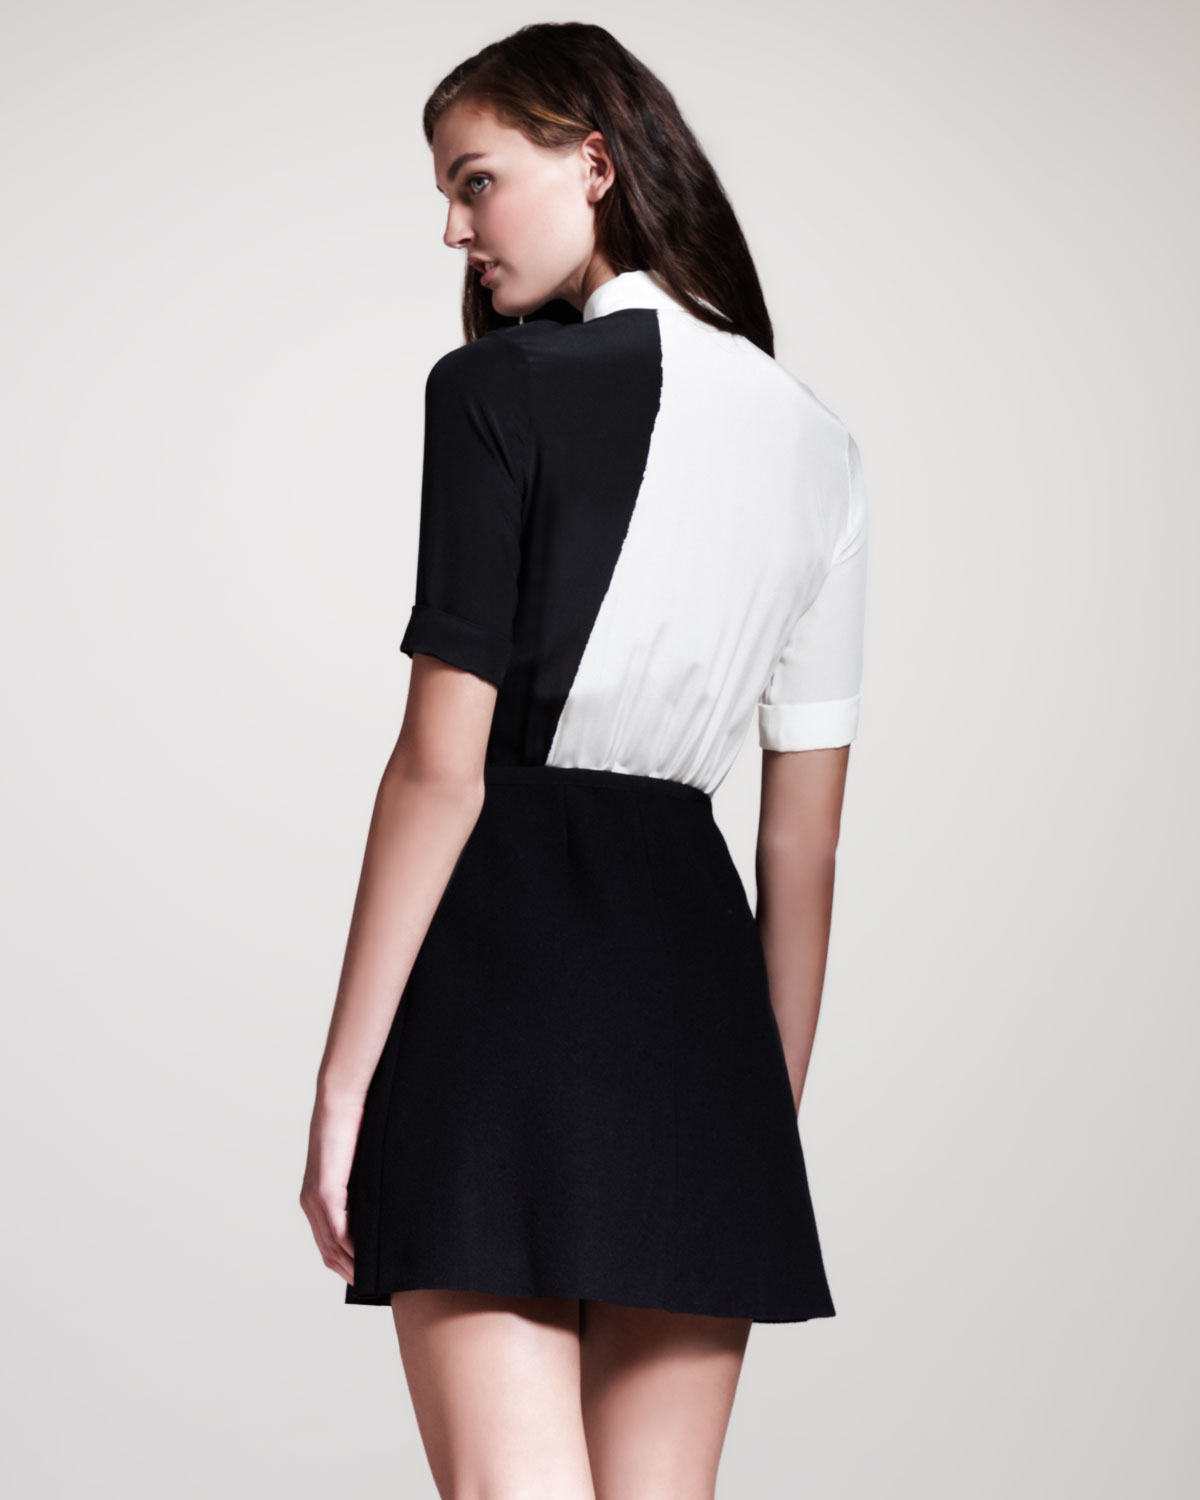 Victoria beckham black shirt dress